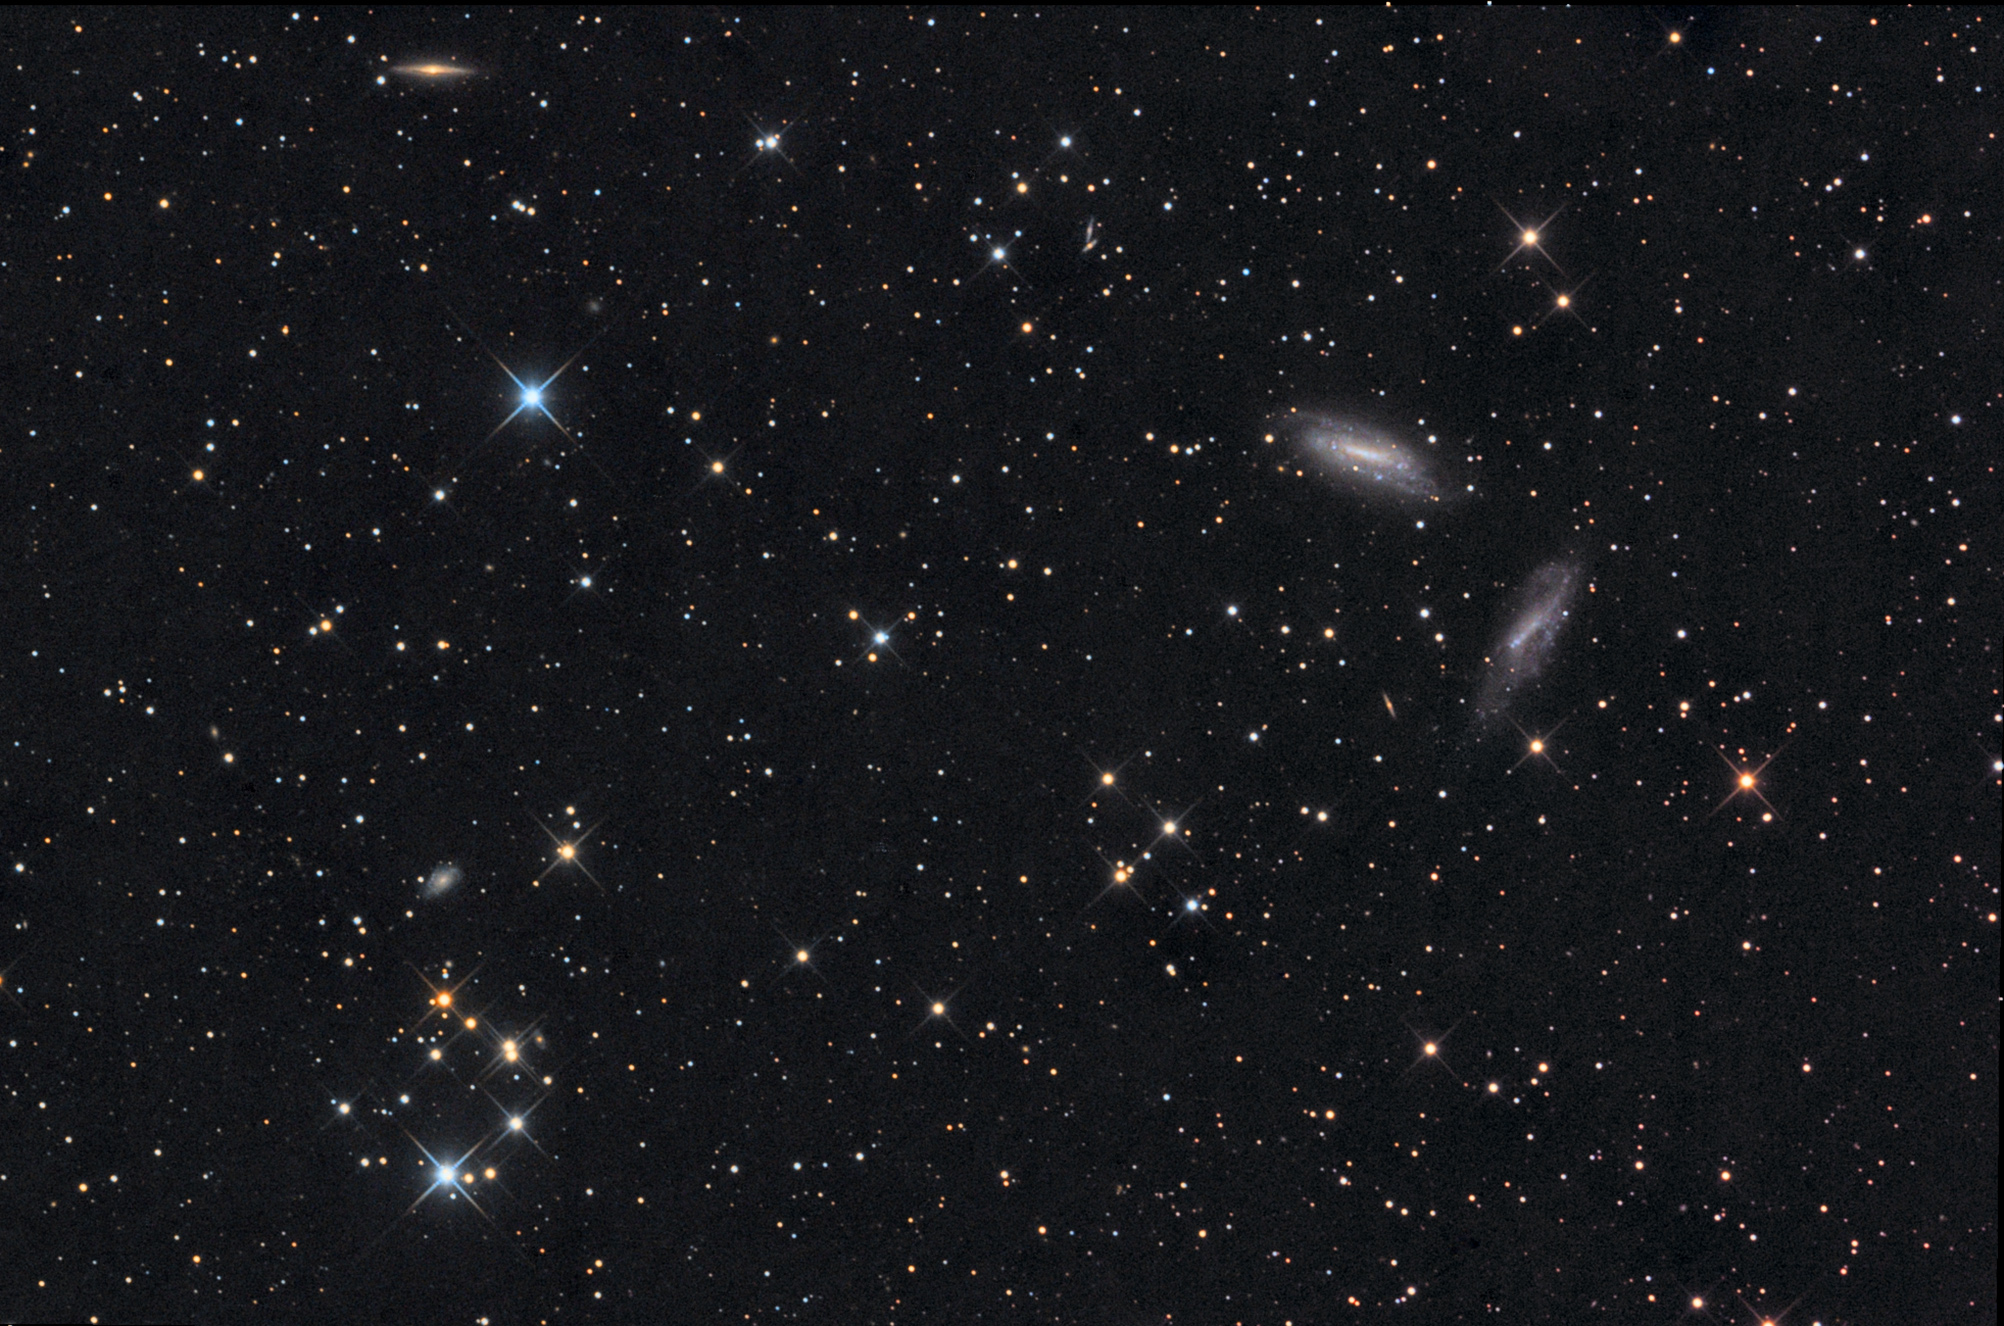 Two Galaxies Share Spotlight in Stunning Stargazer Photo